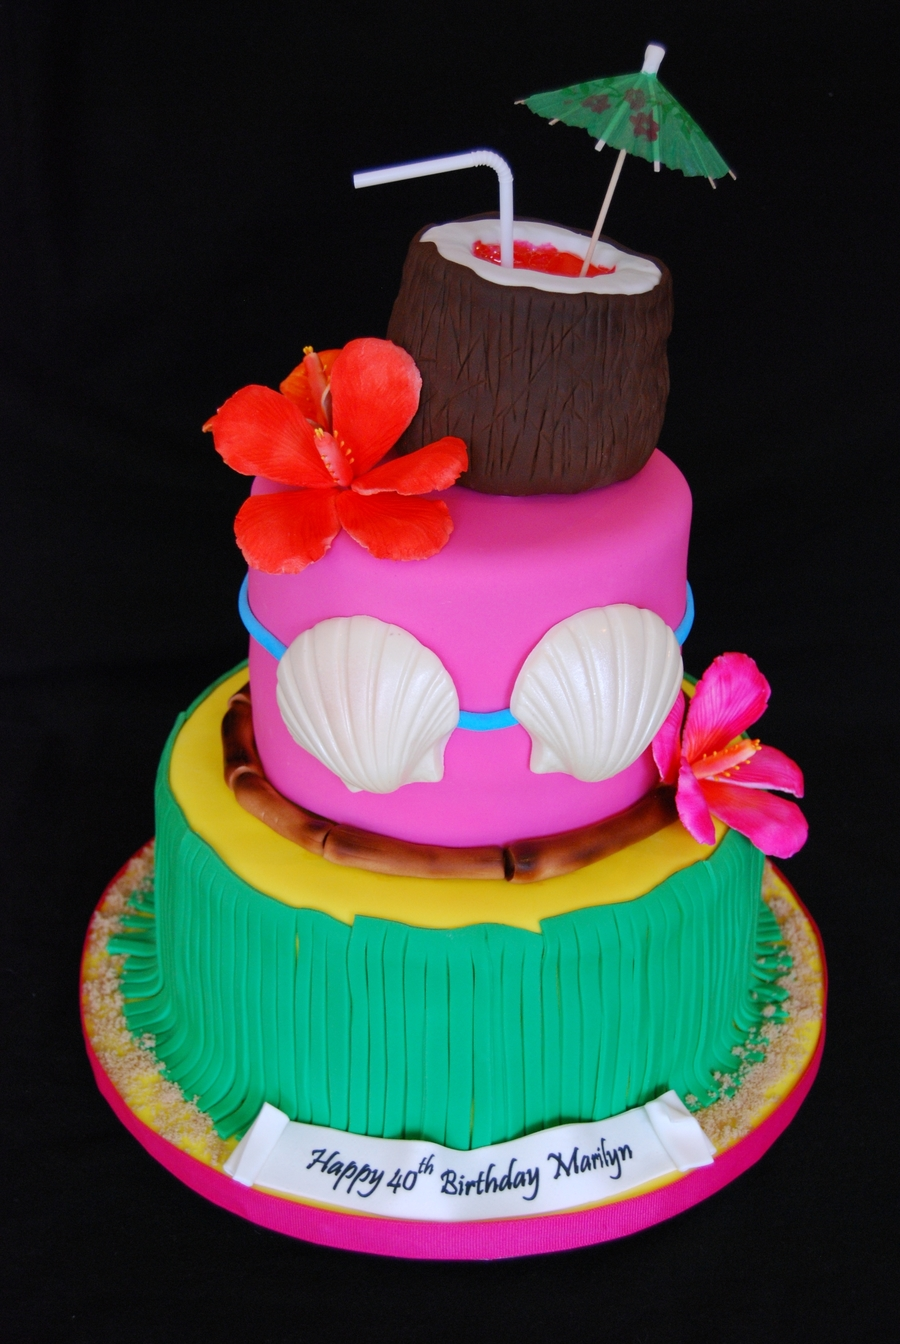 Marvelous Hawaiian Themed 40Th Birthday Cake Cakecentral Com Personalised Birthday Cards Epsylily Jamesorg